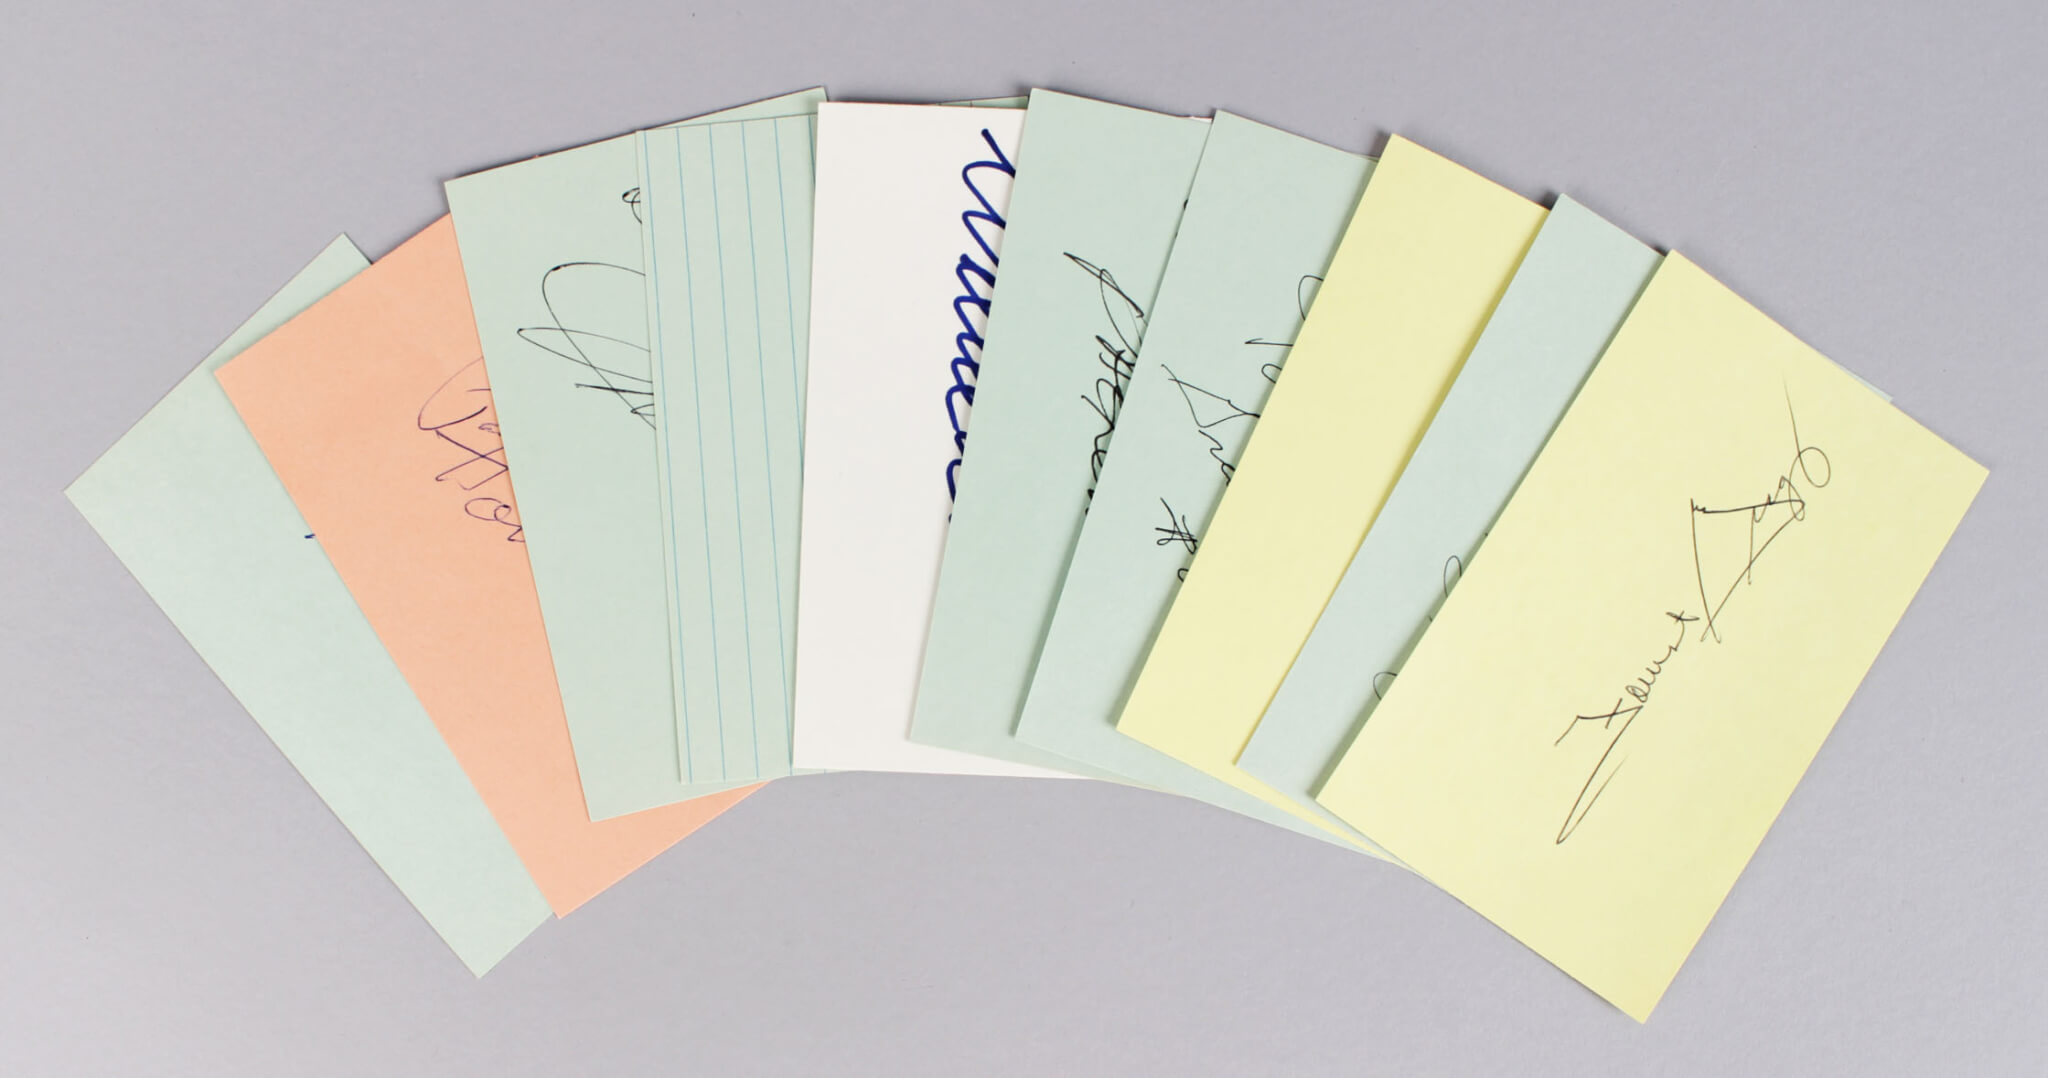 Green Bay Packers Signed 3x5 Index Cards Lot (10) - Jim Taylor, Paul Hornung, Willie Wood etc. (JSA)